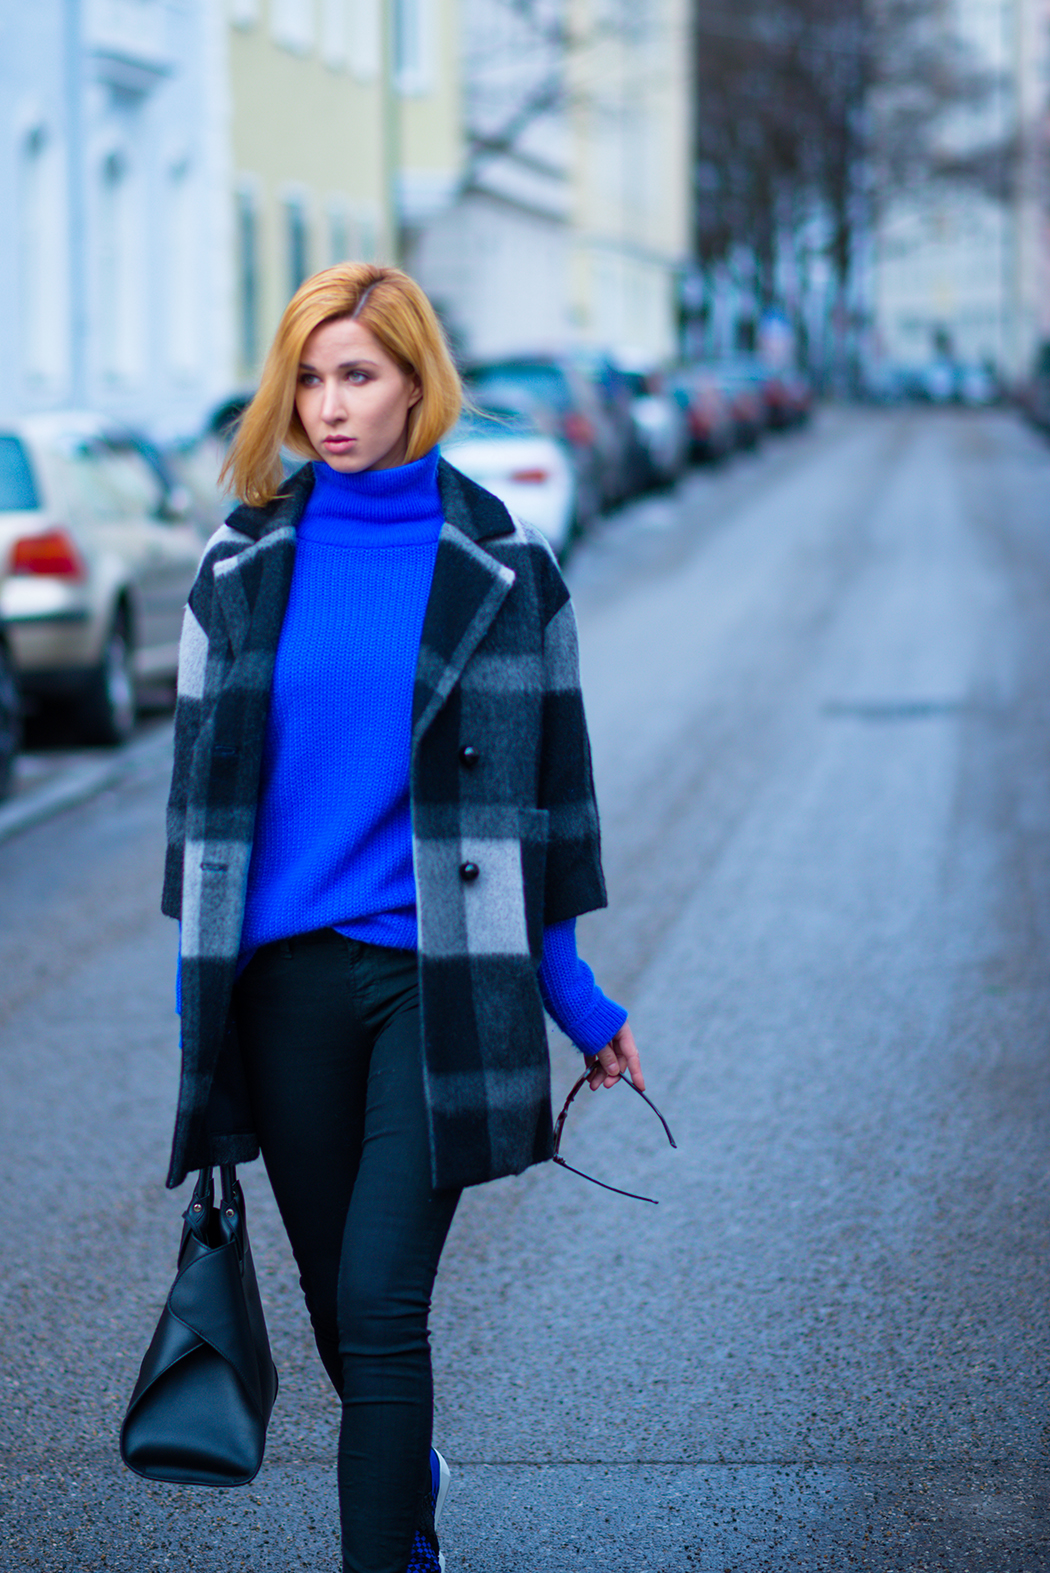 Fashionblog-Fashionblogger-Fashion-Blog-Blogger-Muenchen-Berlin-Deutschland-Fashion_Week-Streetstyle-Look-Lindarella-4-web